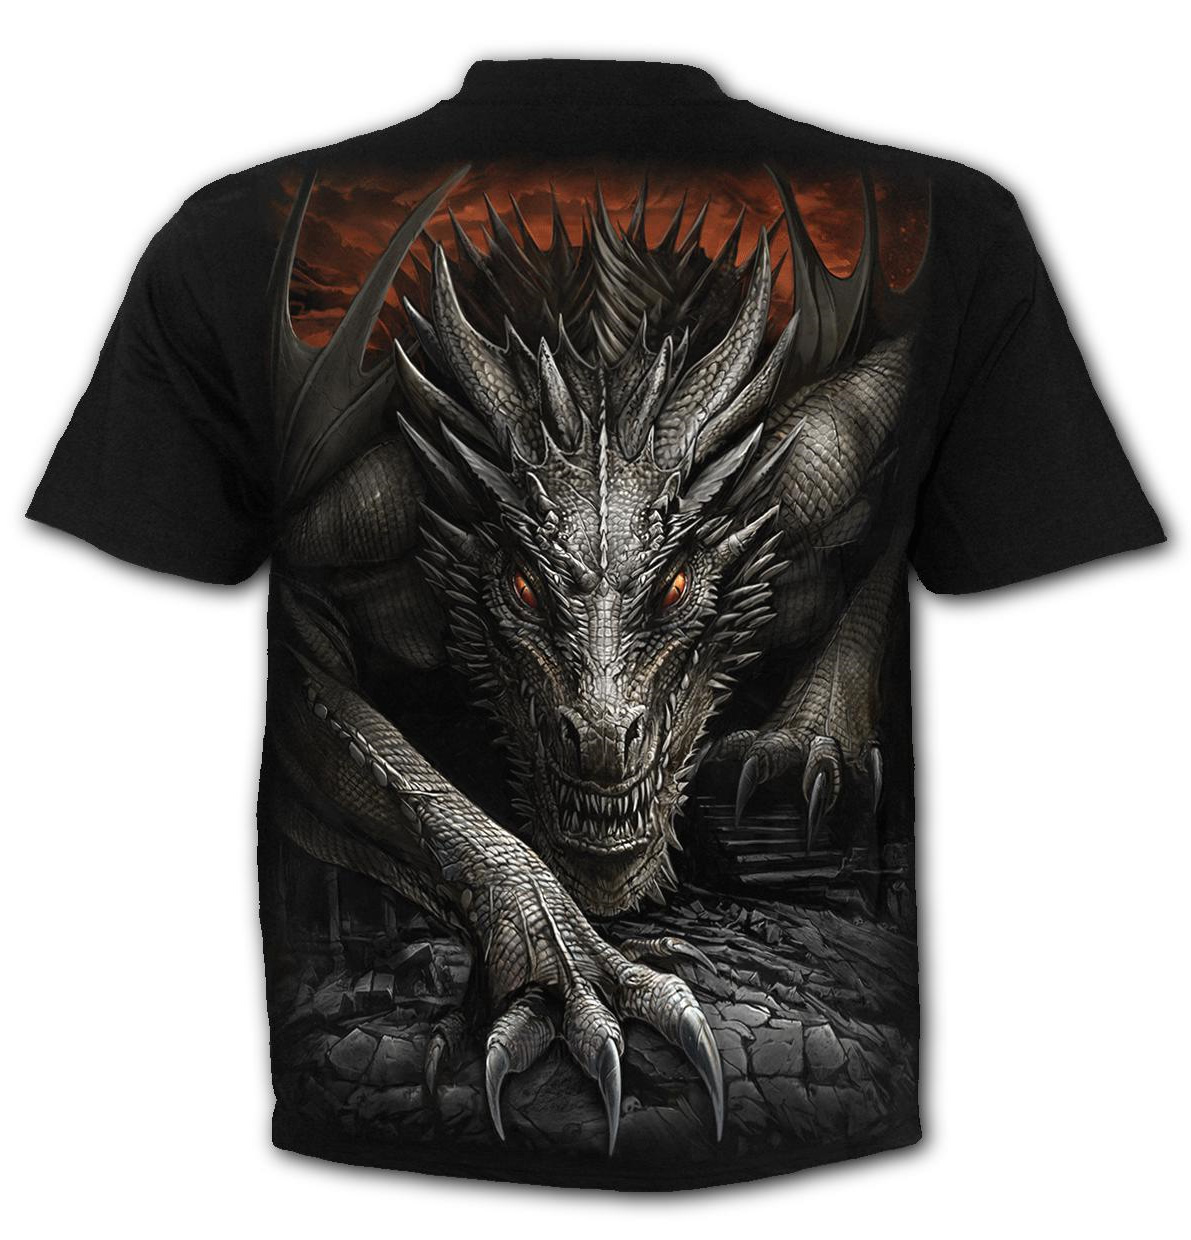 SPIRAL-Direct-Unisex-T-Shirt-Biker-Goth-MAJESTIC-DRACO-Dragon-All-Sizes thumbnail 13